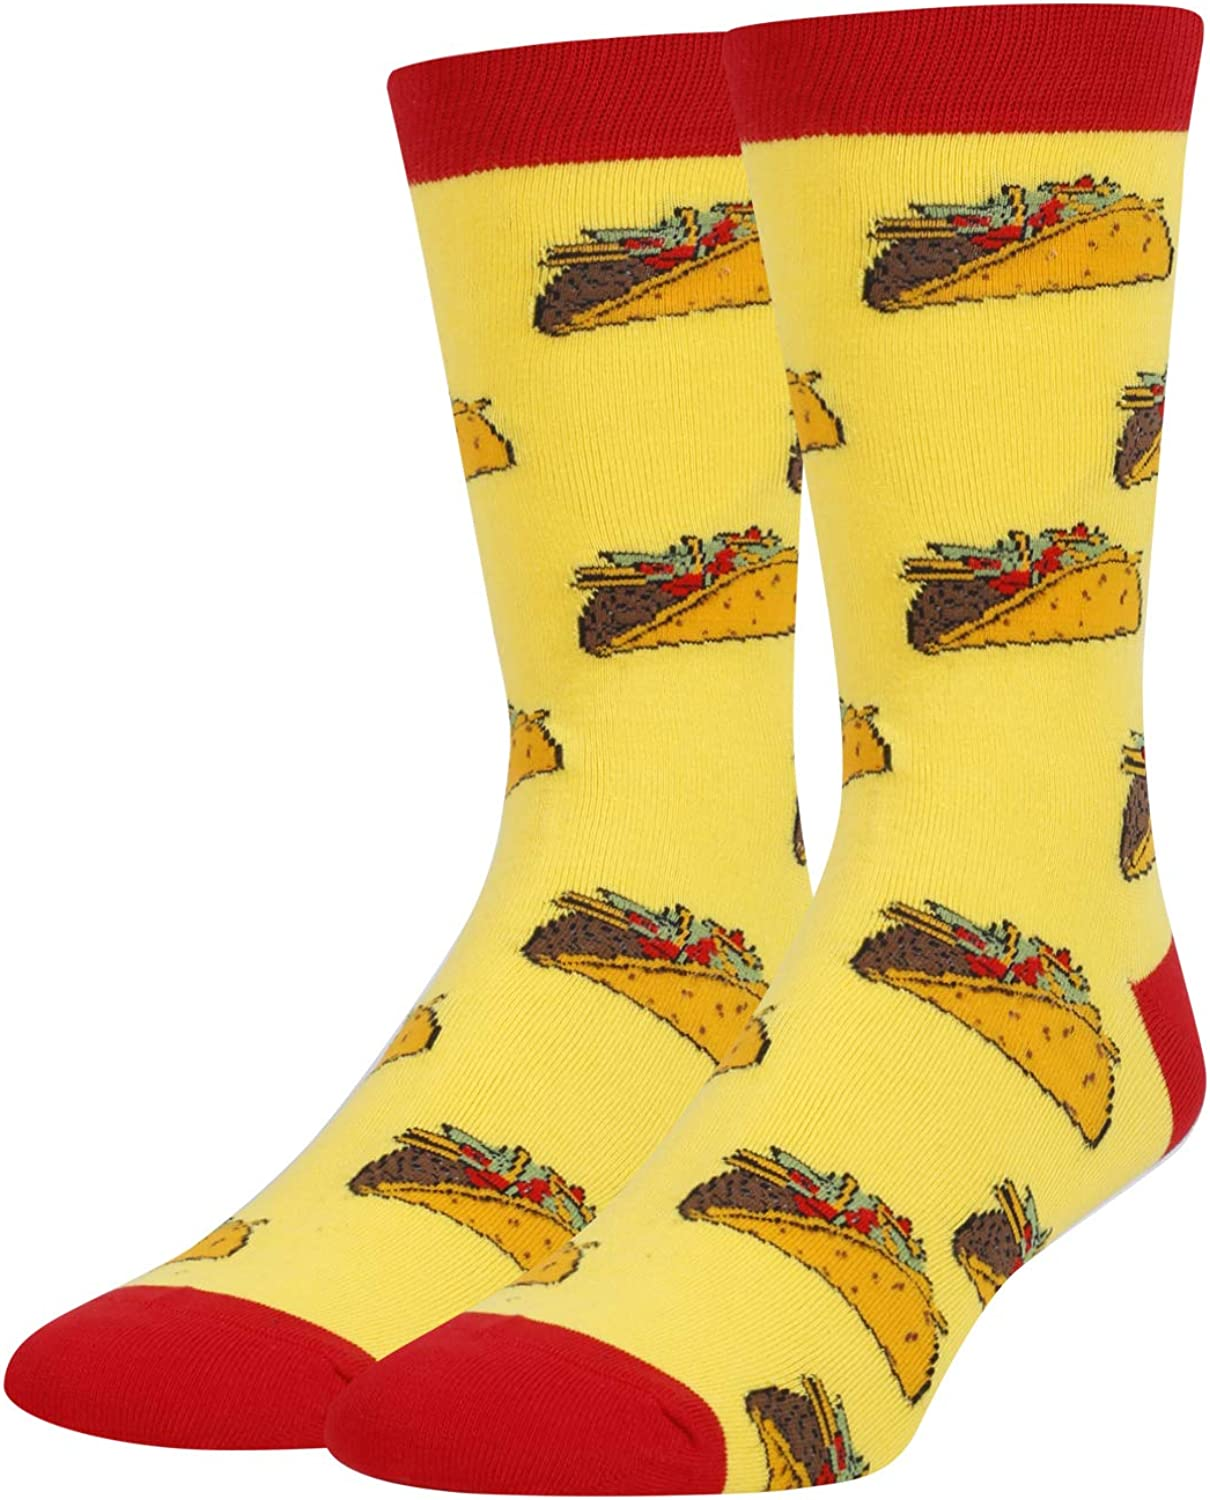 HAPPYPOP Men's Taco Donut Beer Pizza Pickle Dill Socks Funny Crazy Cool Food Lover Gift